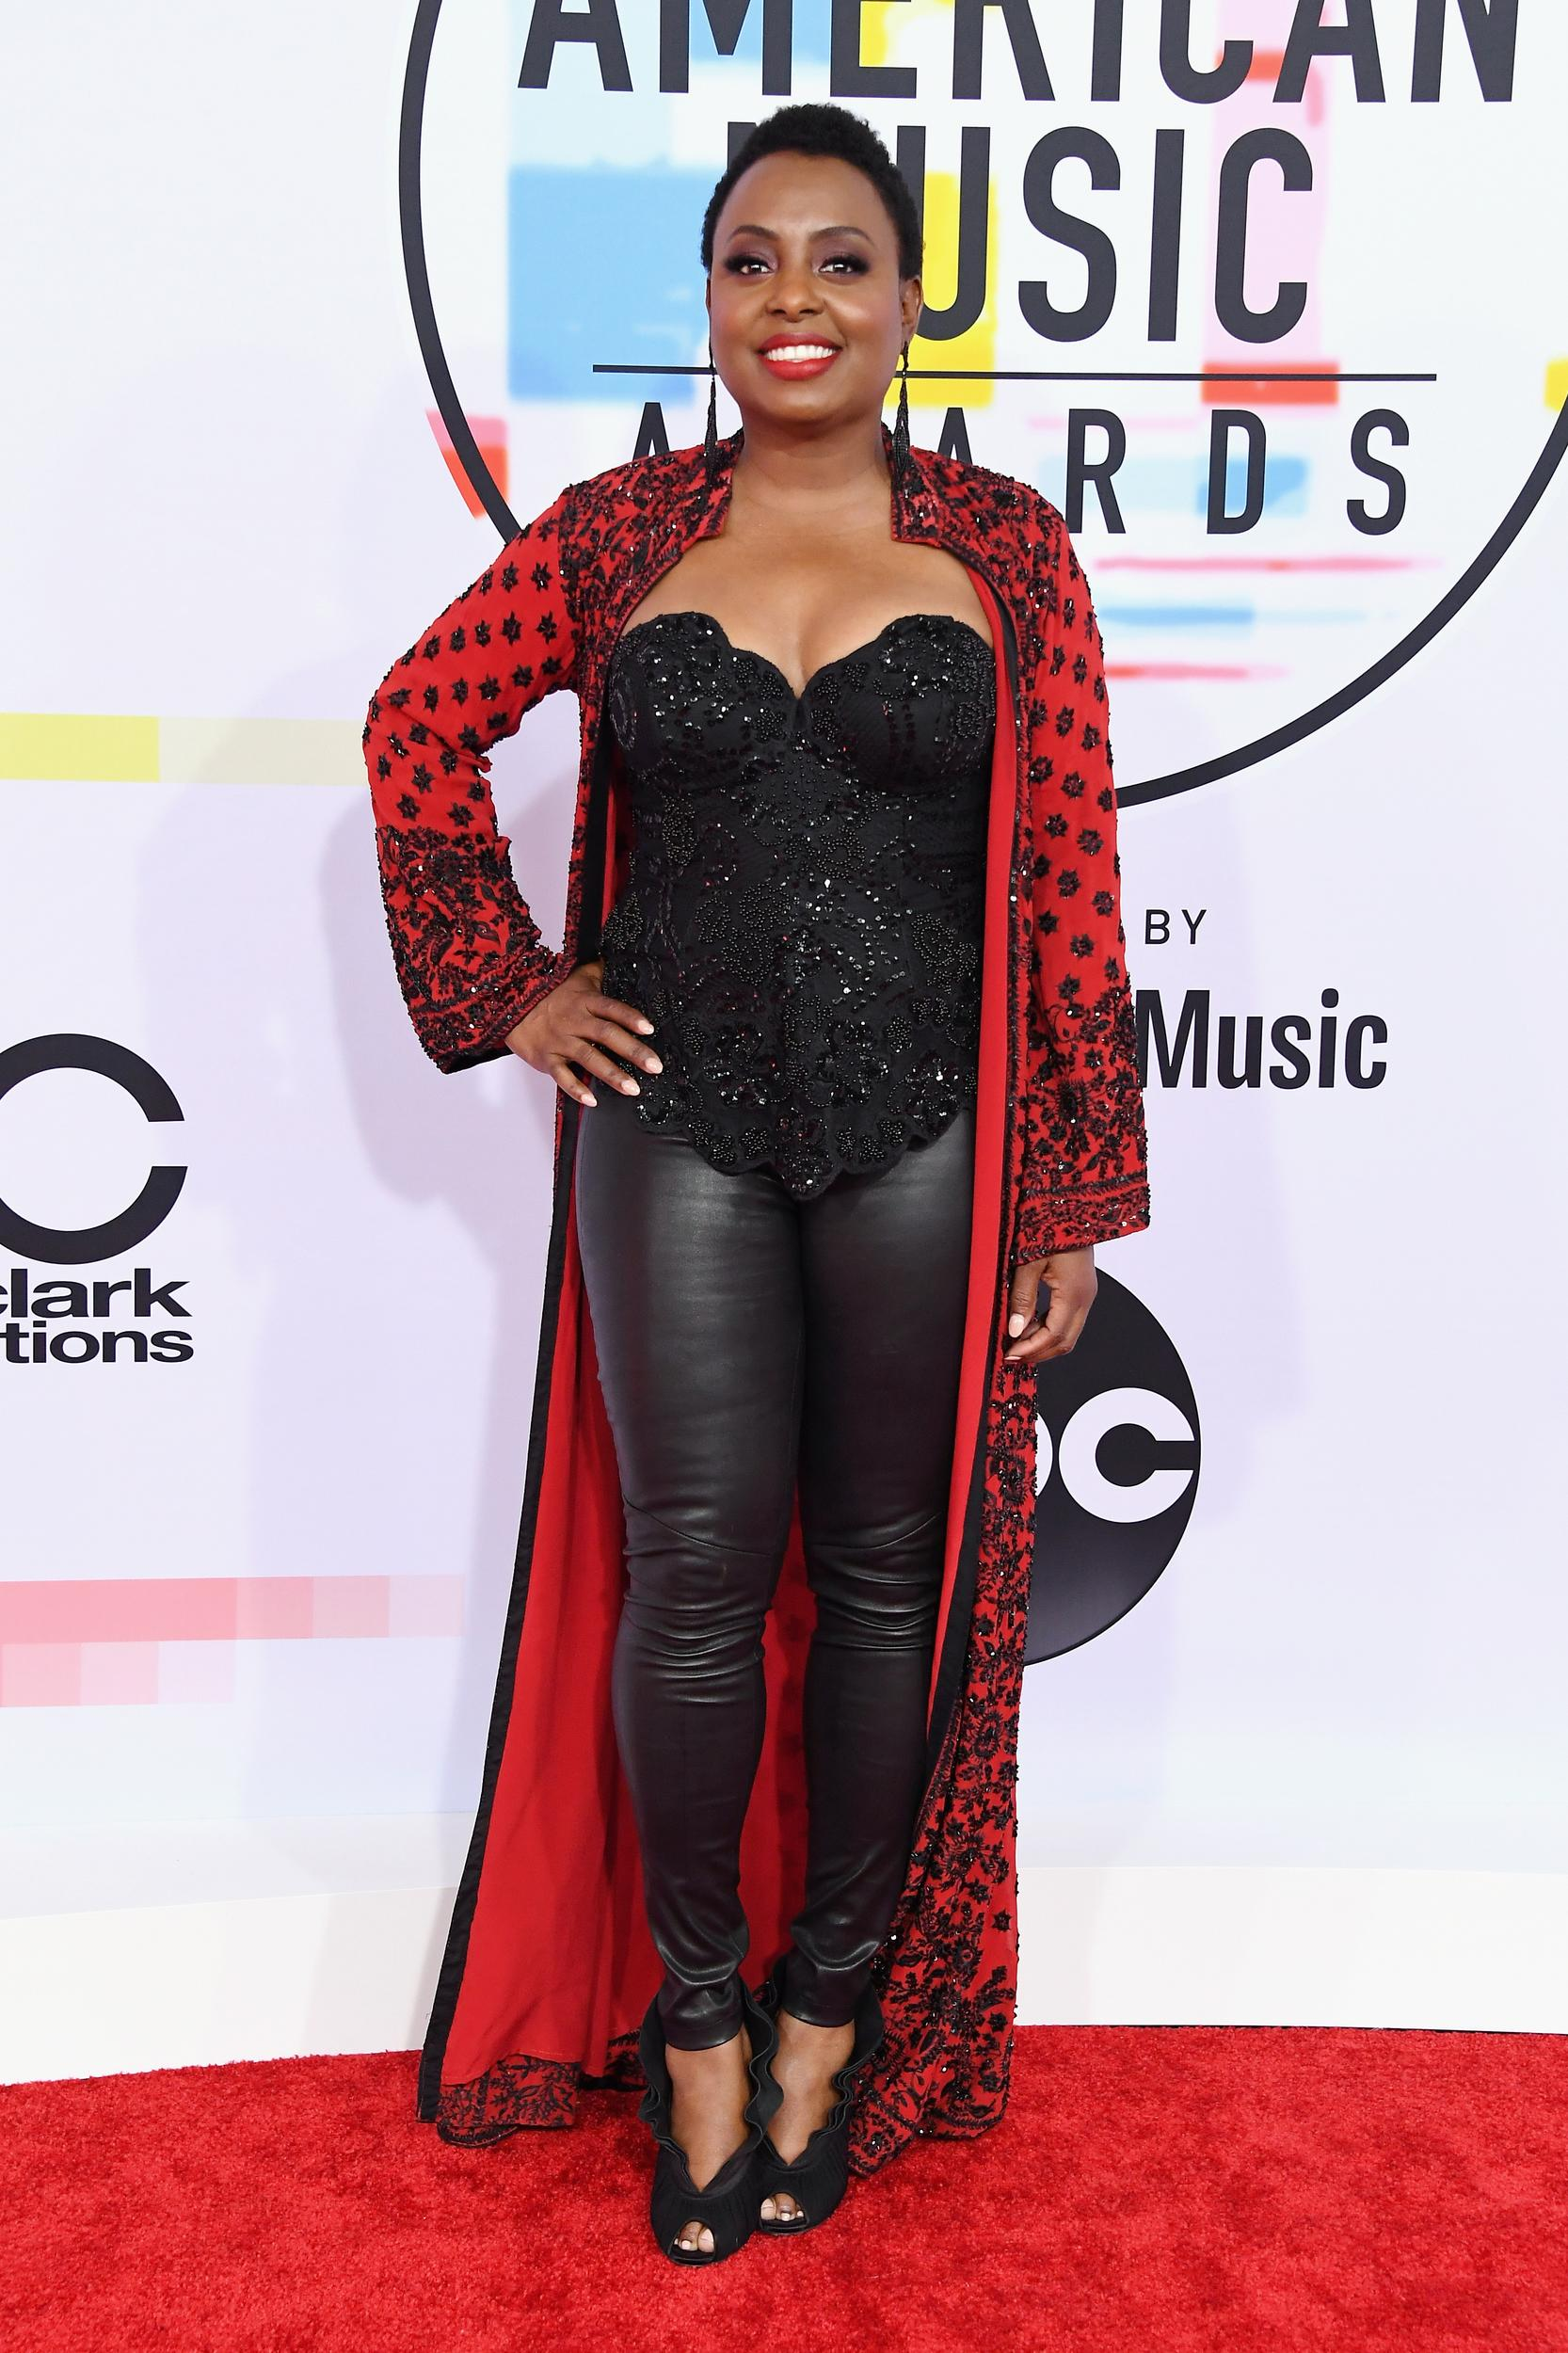 LOS ANGELES, CA - OCTOBER 09: Ledisi attends the 2018 American Music Awards at Microsoft Theater on October 9, 2018 in Los Angeles, California. (Photo by Steve Granitz/WireImage)